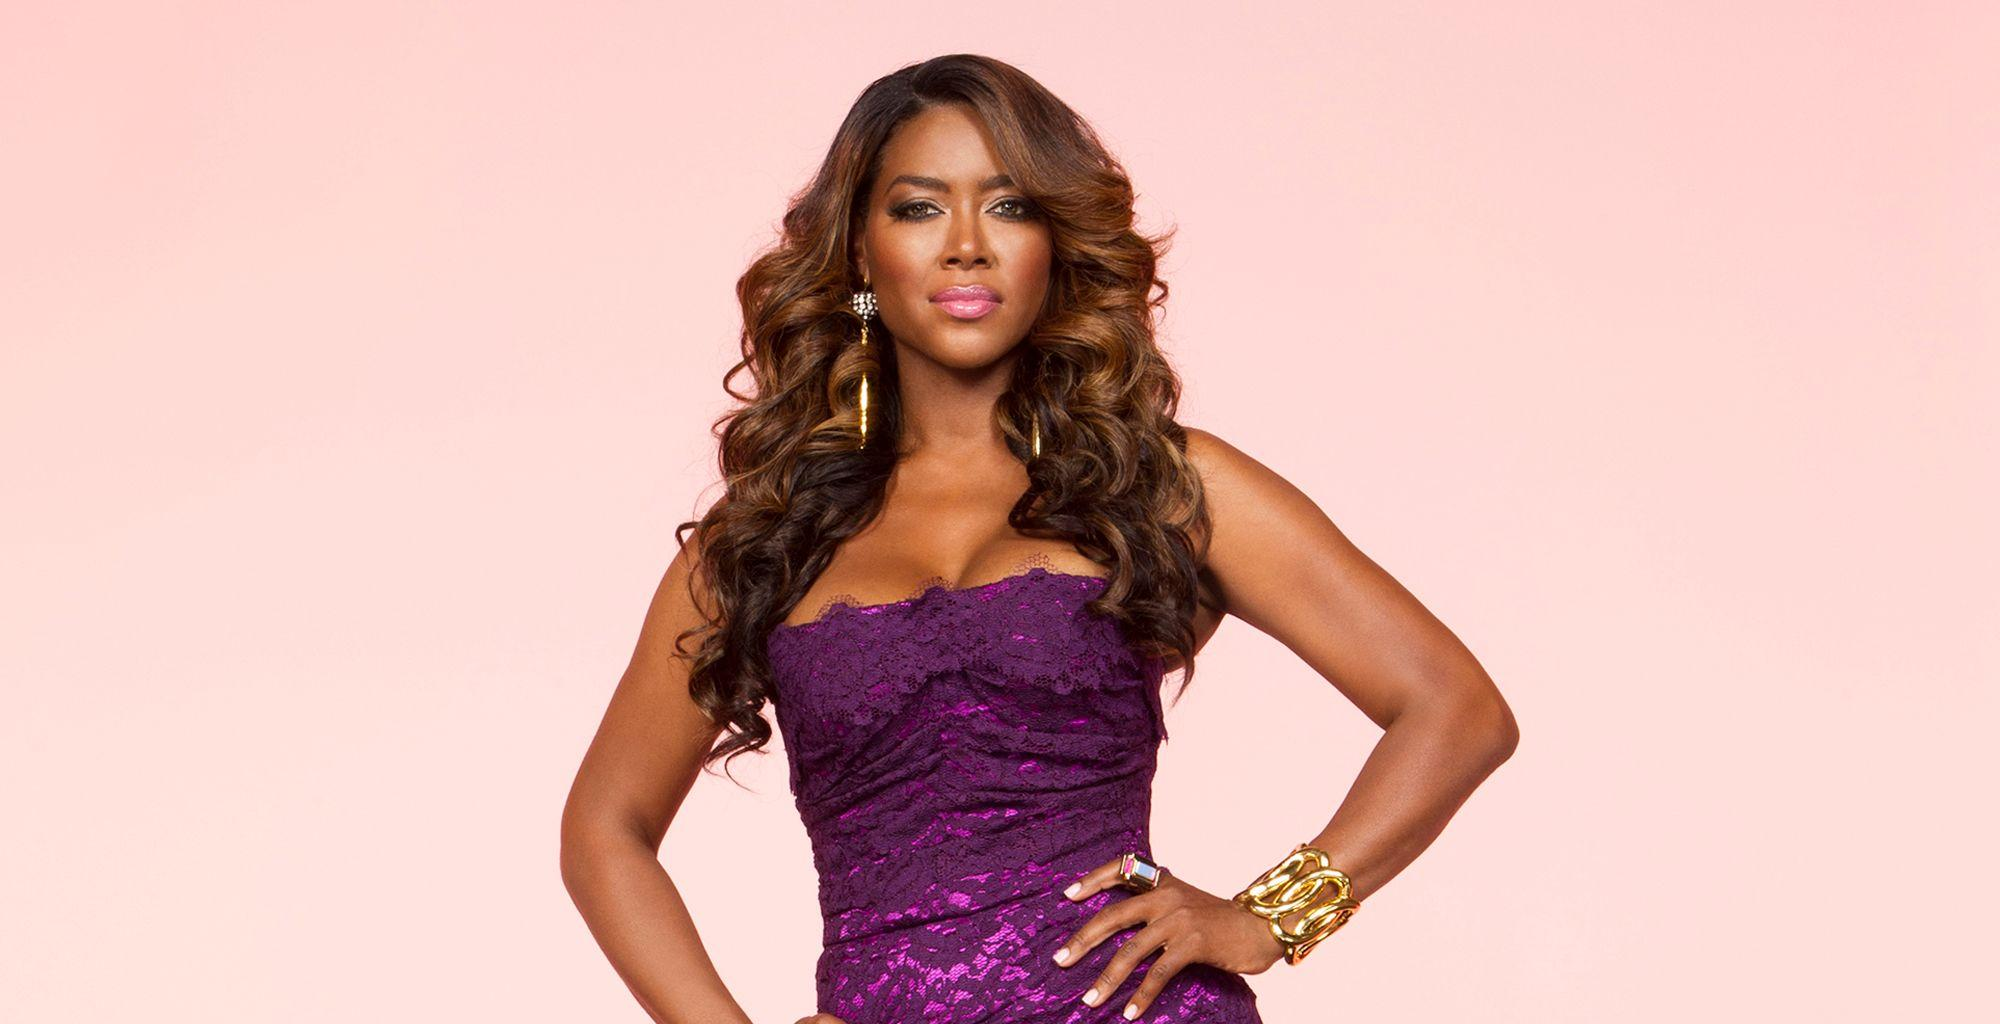 Kenya Moore Loves The Skin She's In: 'Wrapped In Chocolate' - Check Out Her Gorgeous Photo